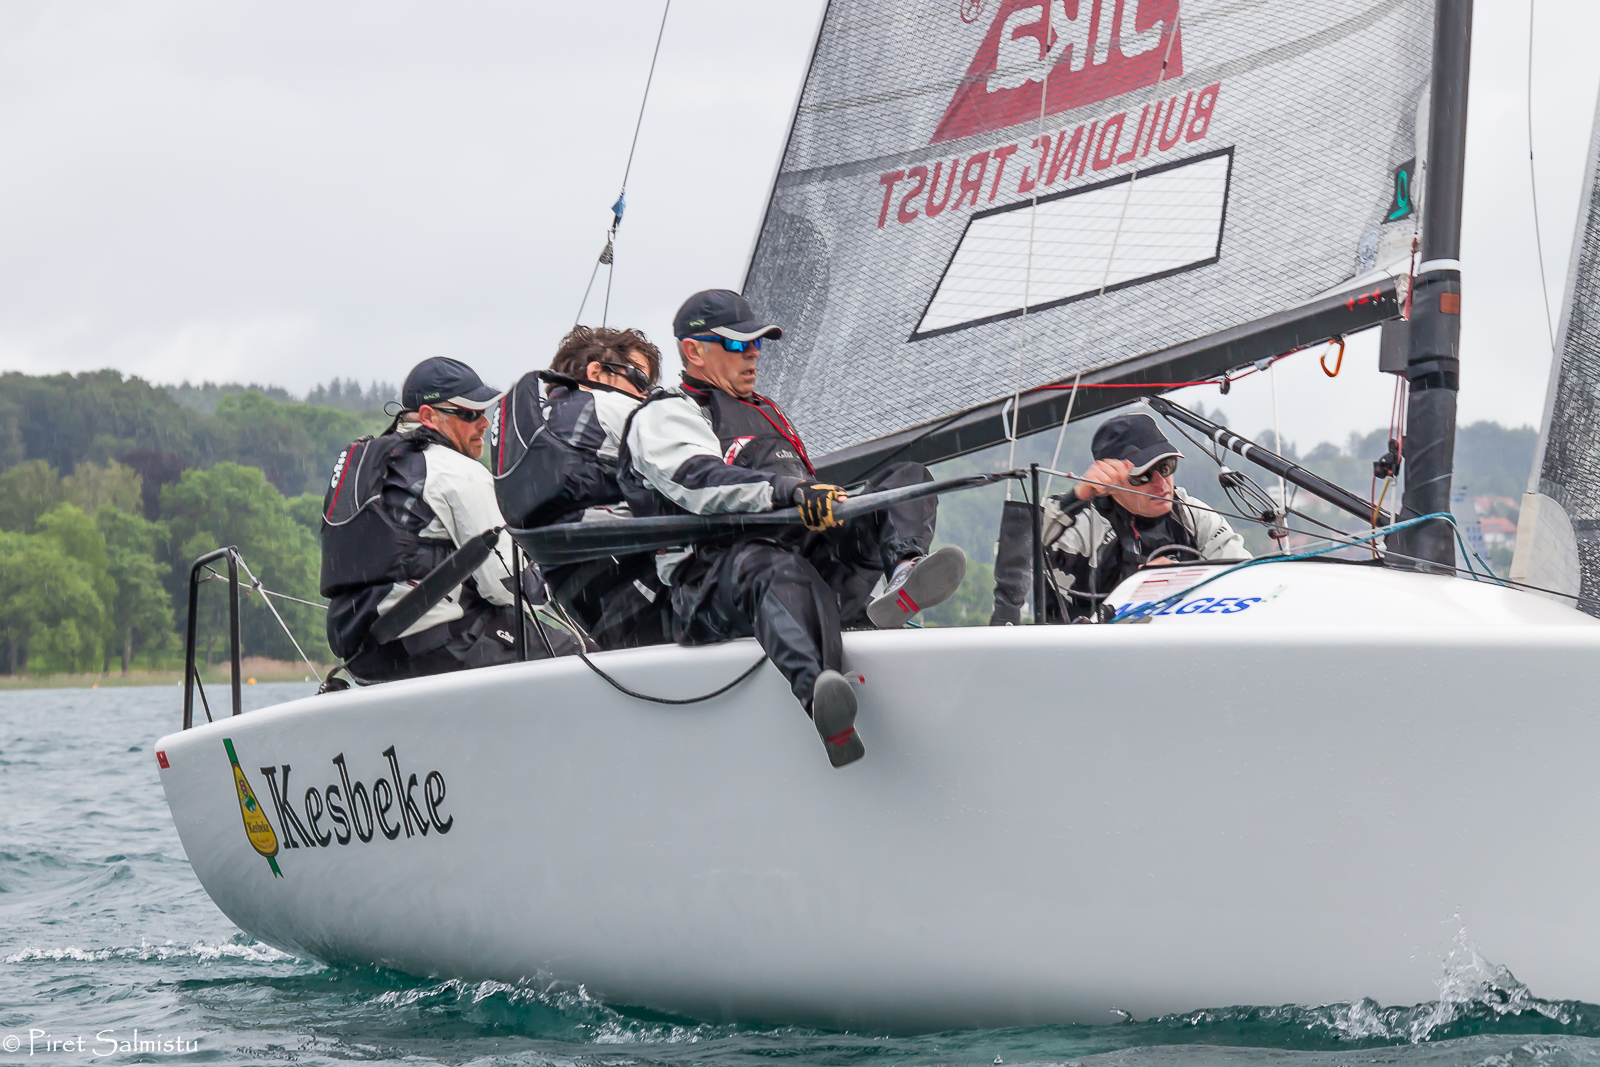 Eelco Blok's Kesbeke/SIKA/Gill team NED827 with Ronald Veraar helming - photo Pi